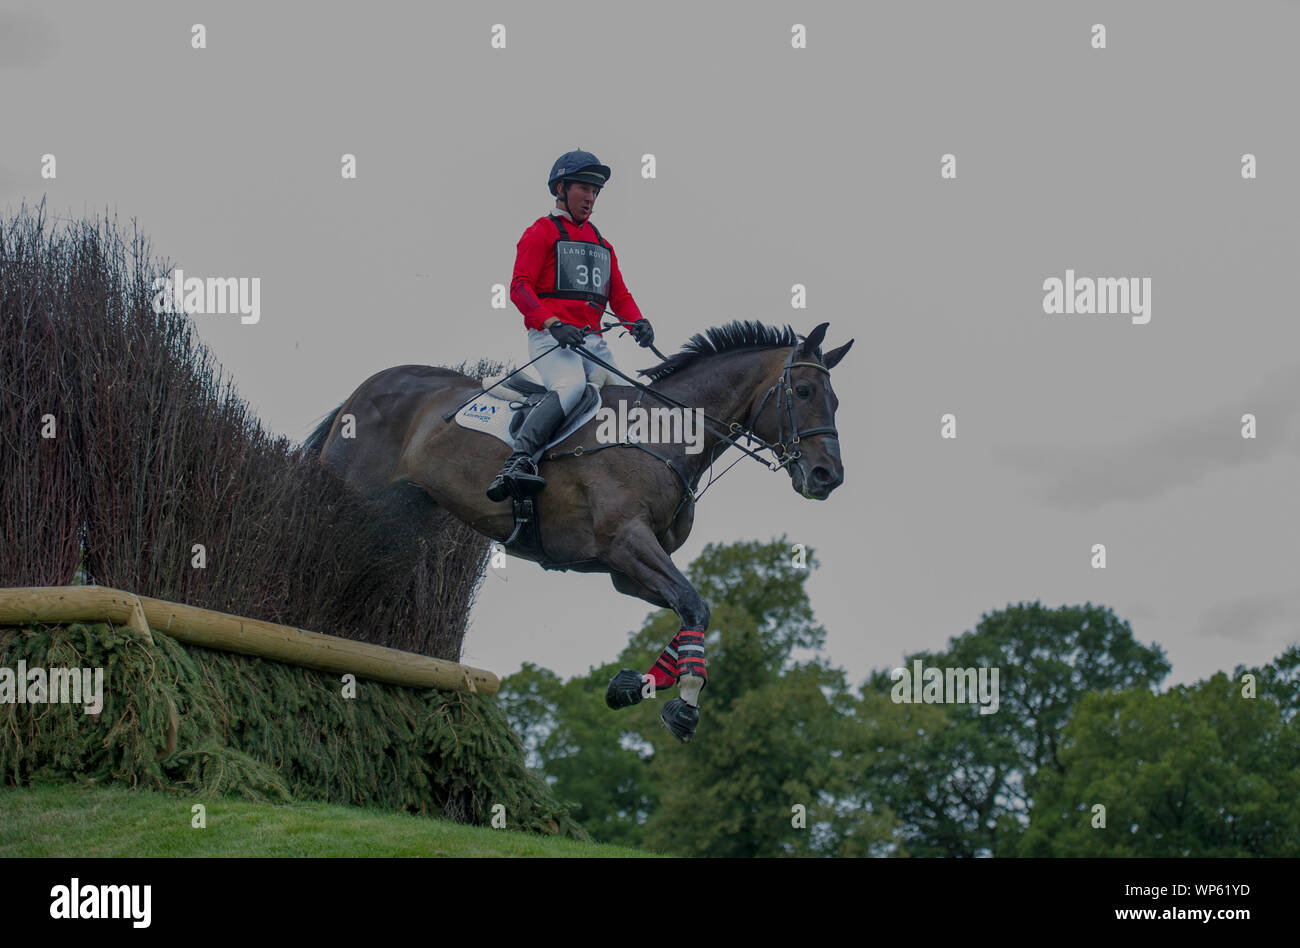 Stamford, UK, Saturday 7th September, 2019. David Doel riding Shannondale Quest during the Land Rover Burghley Horse Trials,  Cross Country phase. © Julie Priestley/Alamy Live News Stock Photo